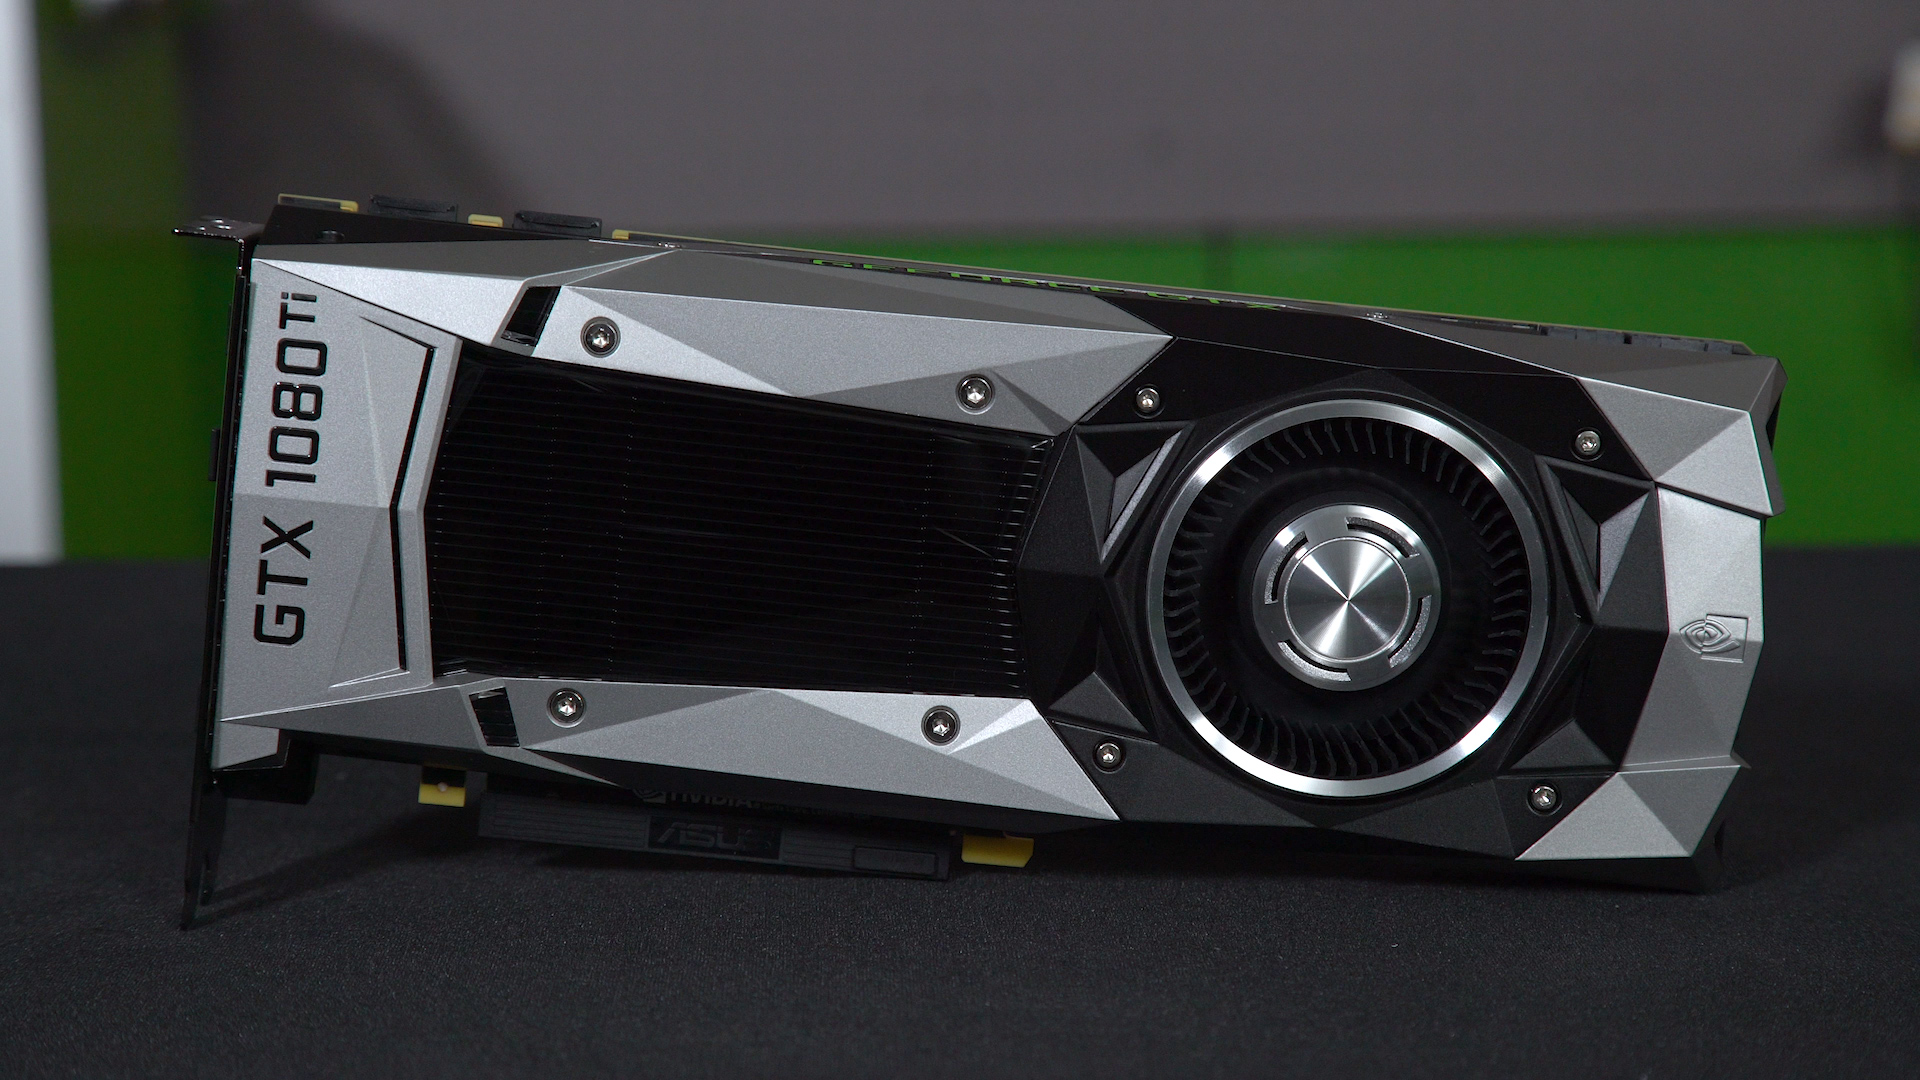 GeForce Garage: An Ultimate RGB Elite Performance Build